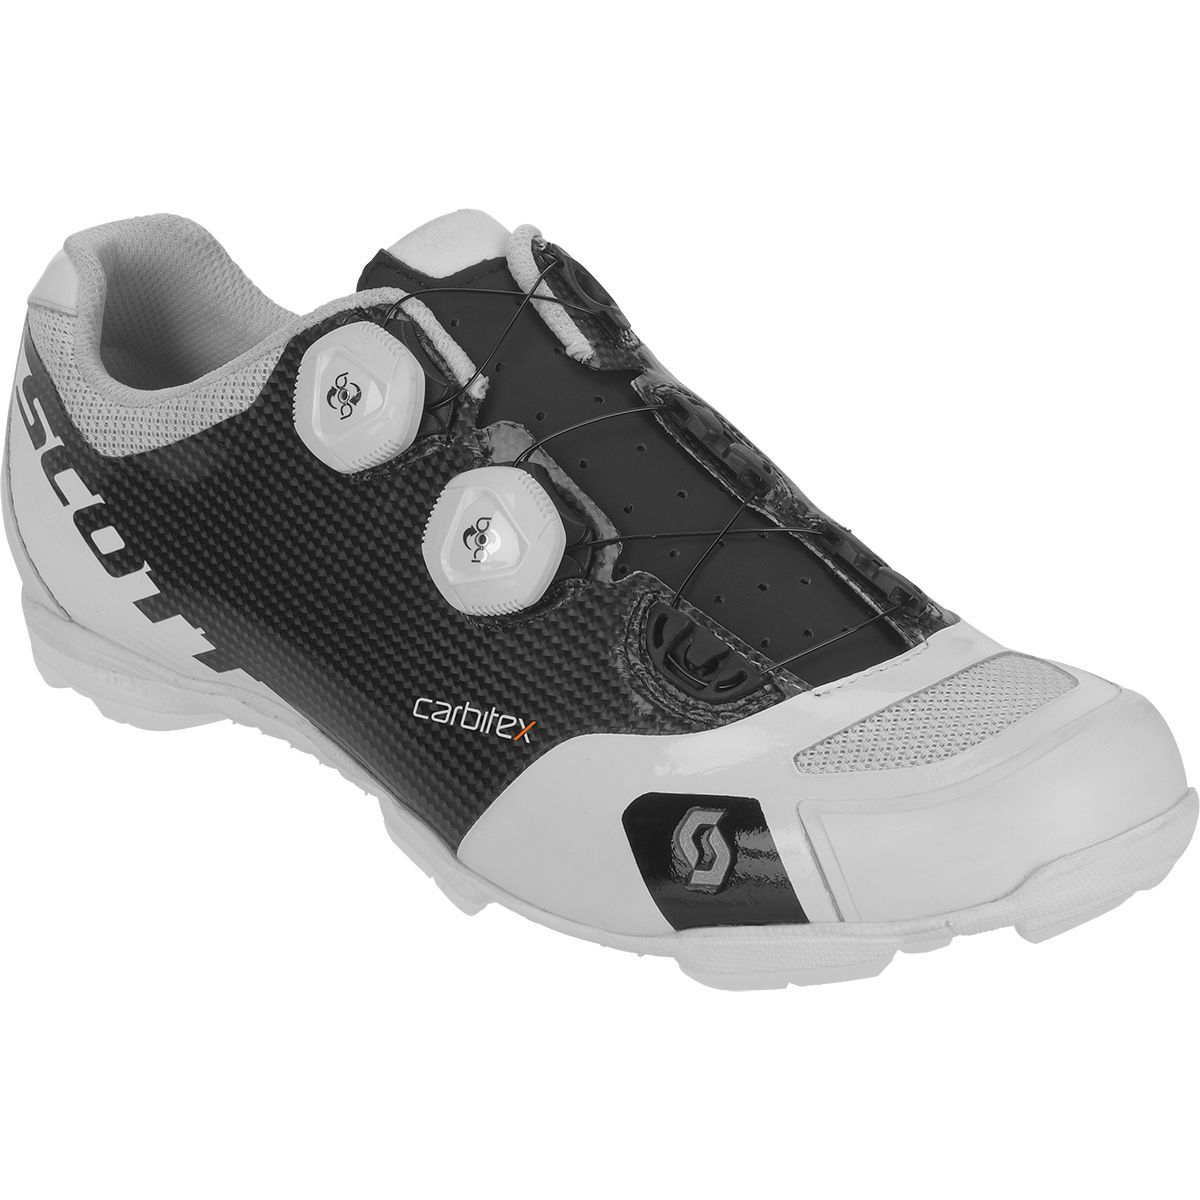 Scott Mtb Rc Sl Cycling Shoe Men S Cycling Shoes Men Cycling